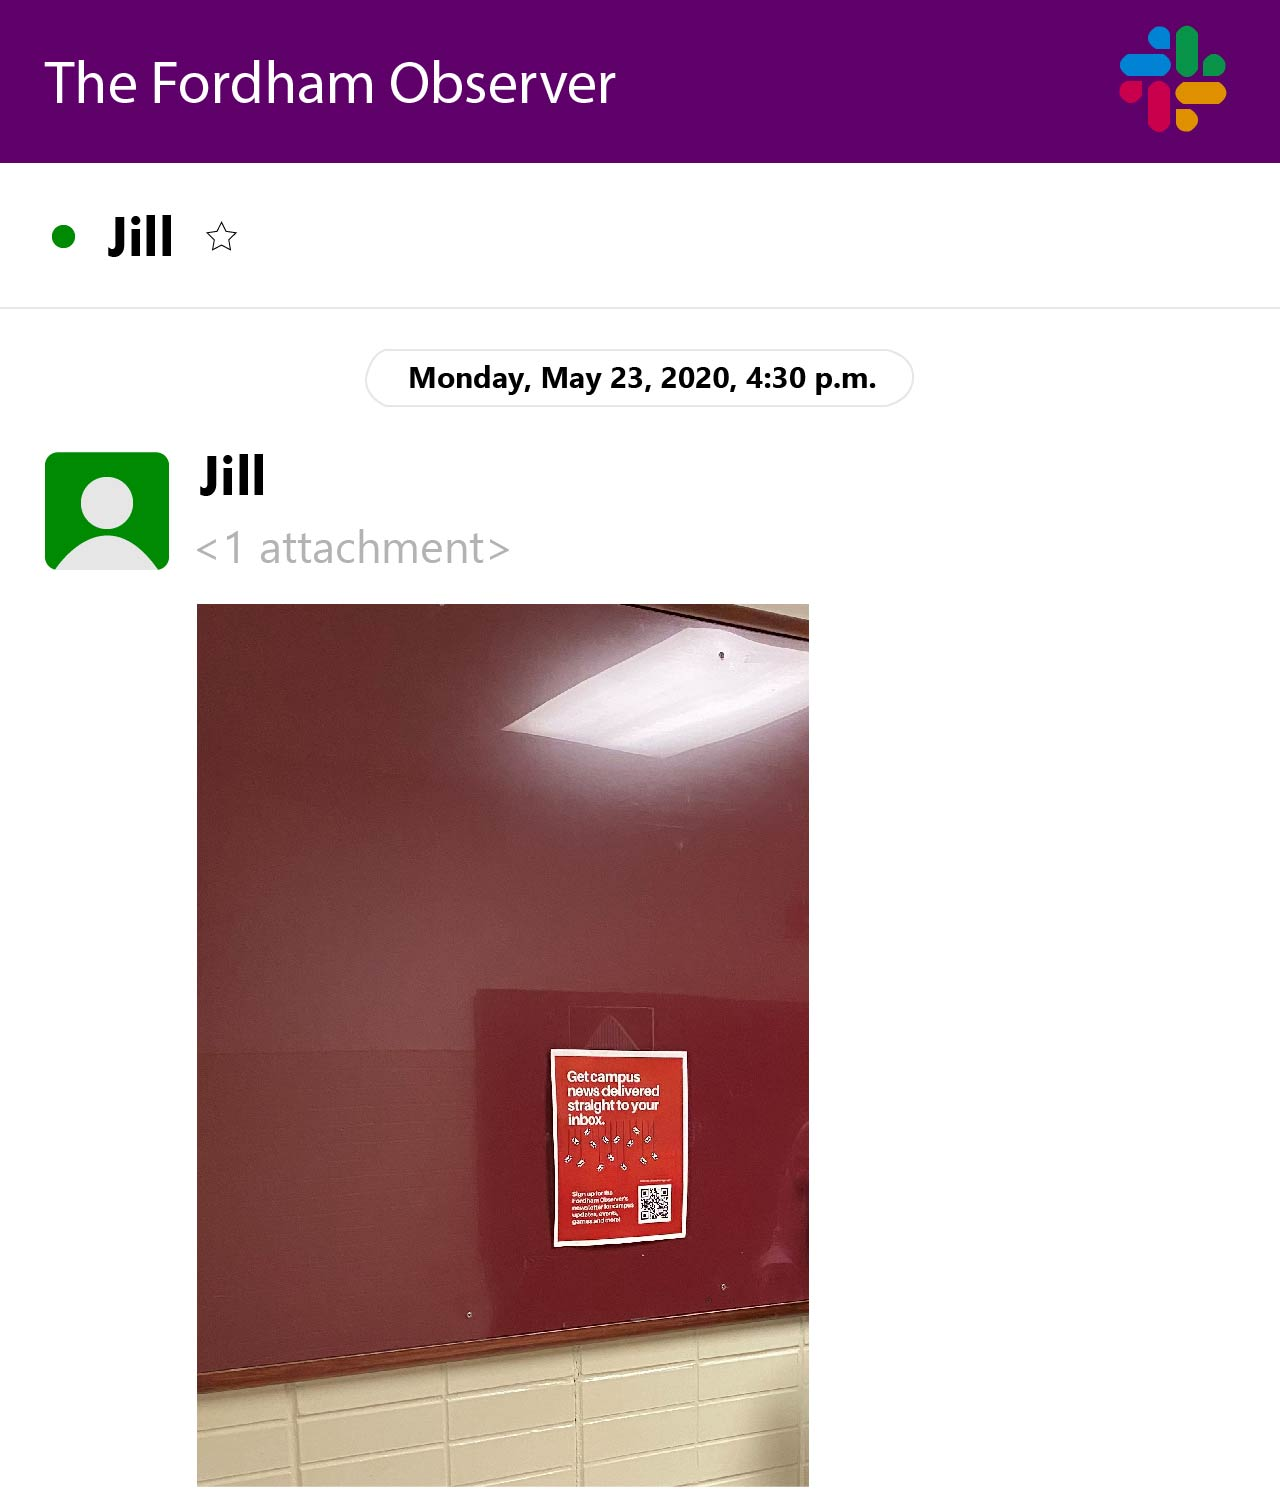 graphic of a slack workspace. jill has sent owen a photo of a newsletter flyer on a maroon bulletin board